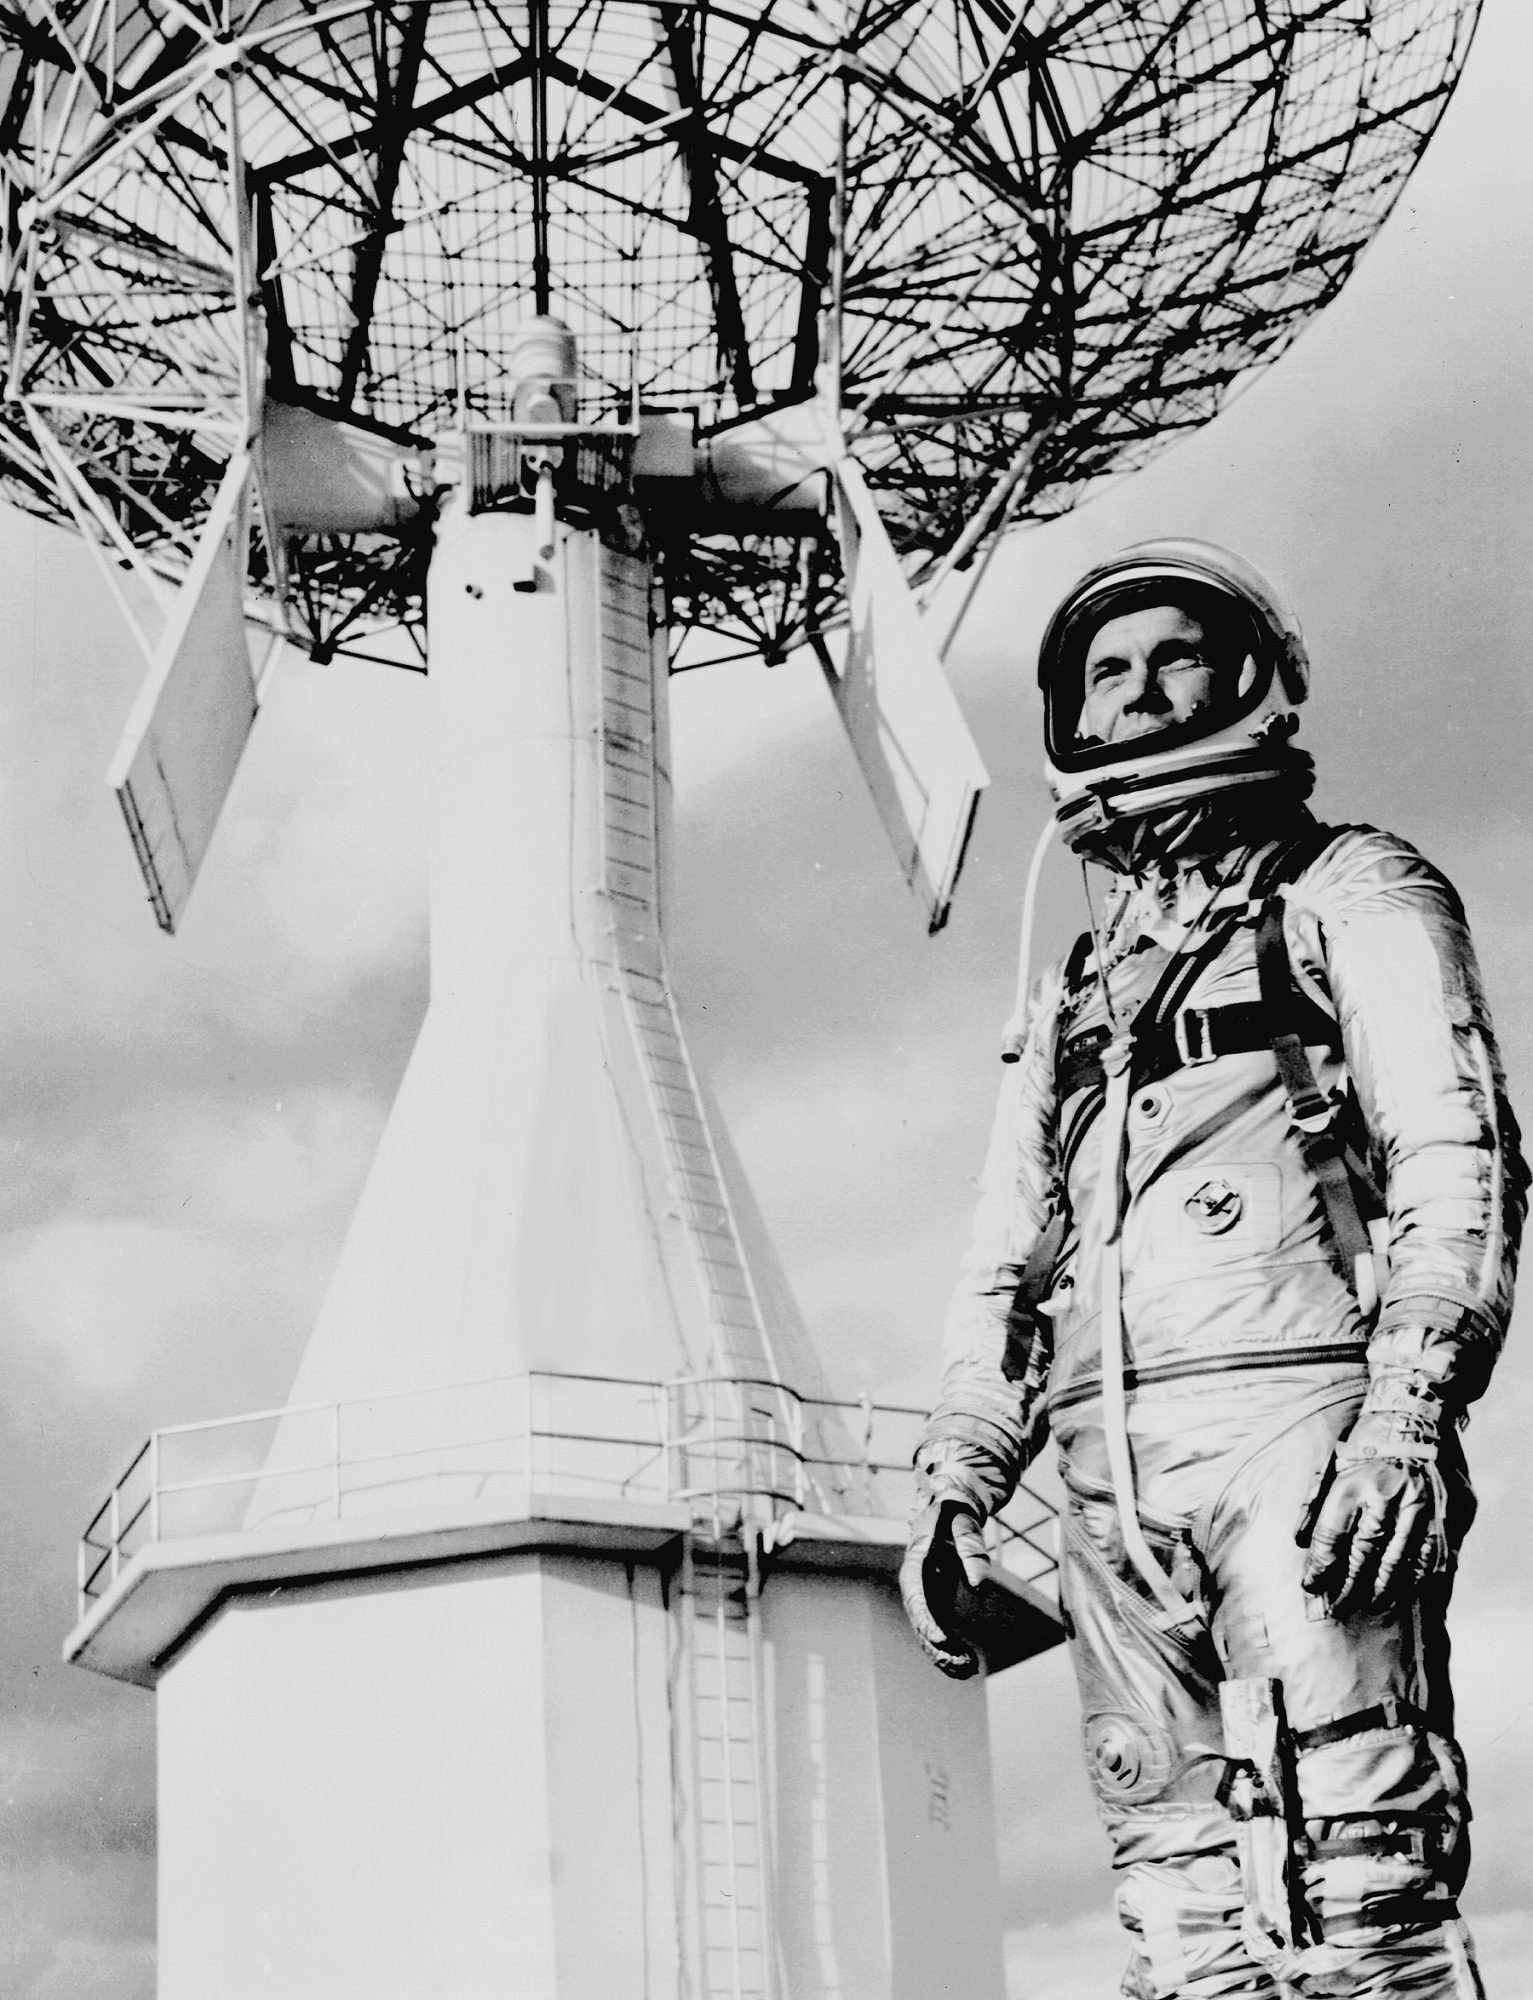 CAPE CANAVERAL - JUNE 22: PROJECT MERCURY John Glenn. Image dated June 22, 1962. (Photo by CBS via Getty Images)